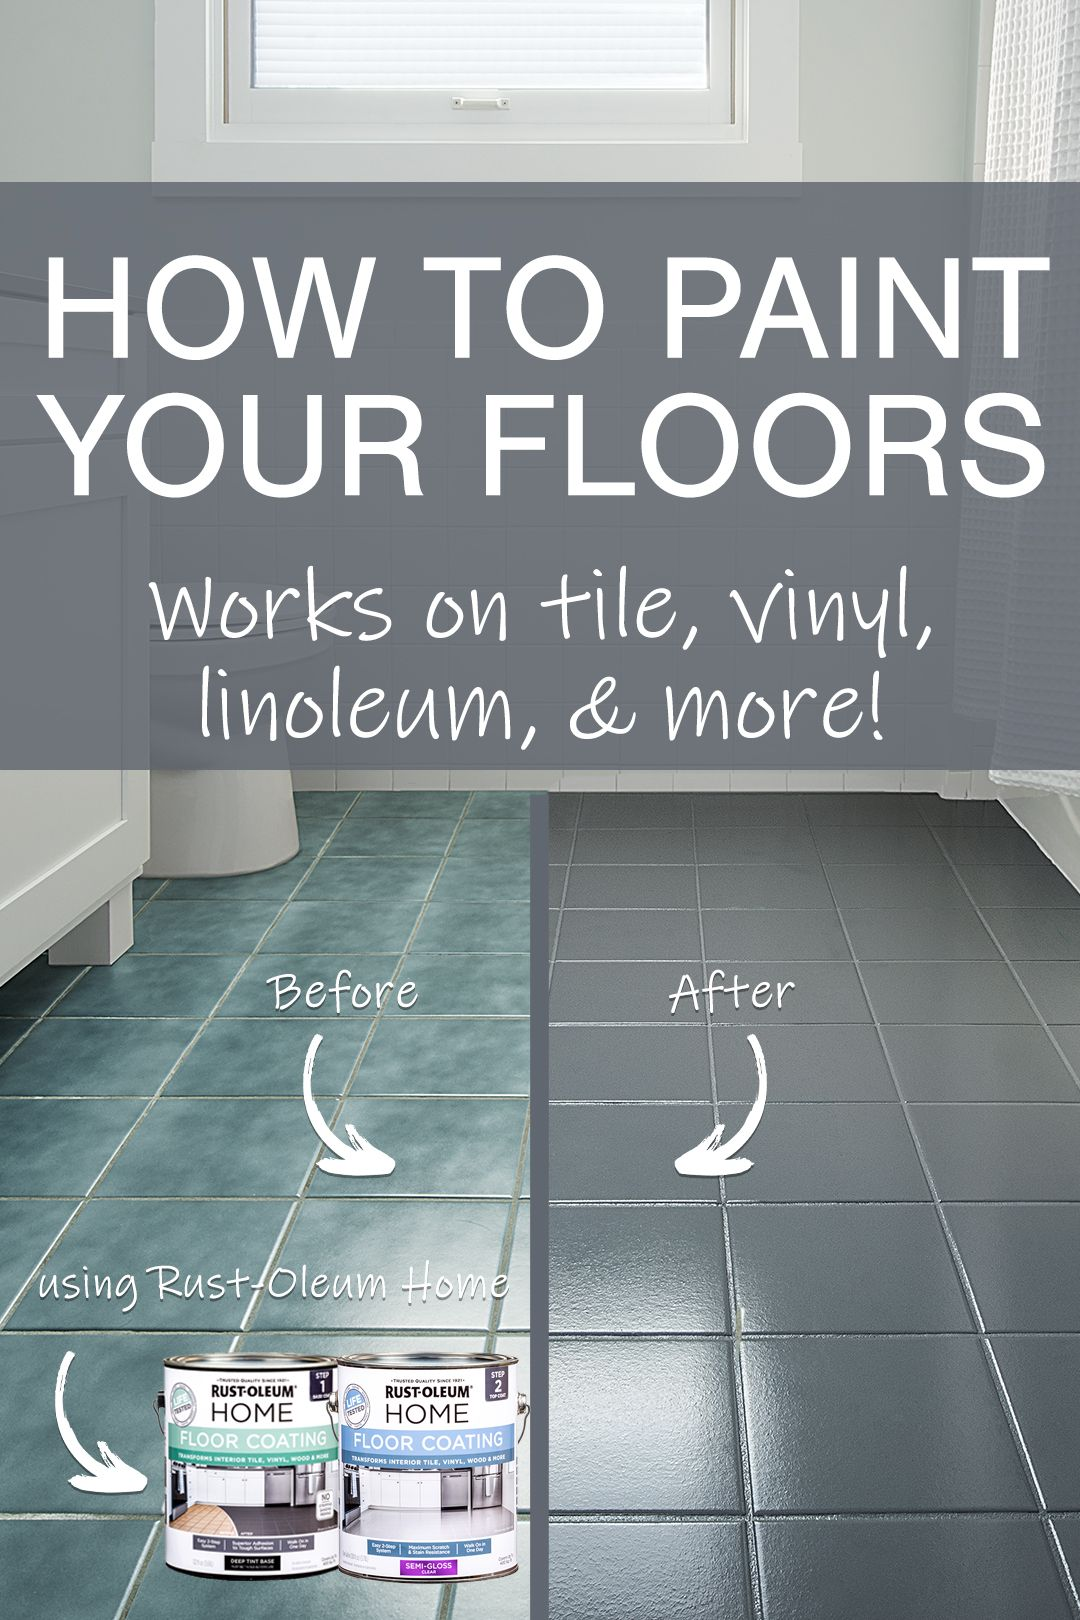 How To Paint Your Floors Using Rust Oleum Home In 2020 Updating House Diy Home Repair Home Repairs